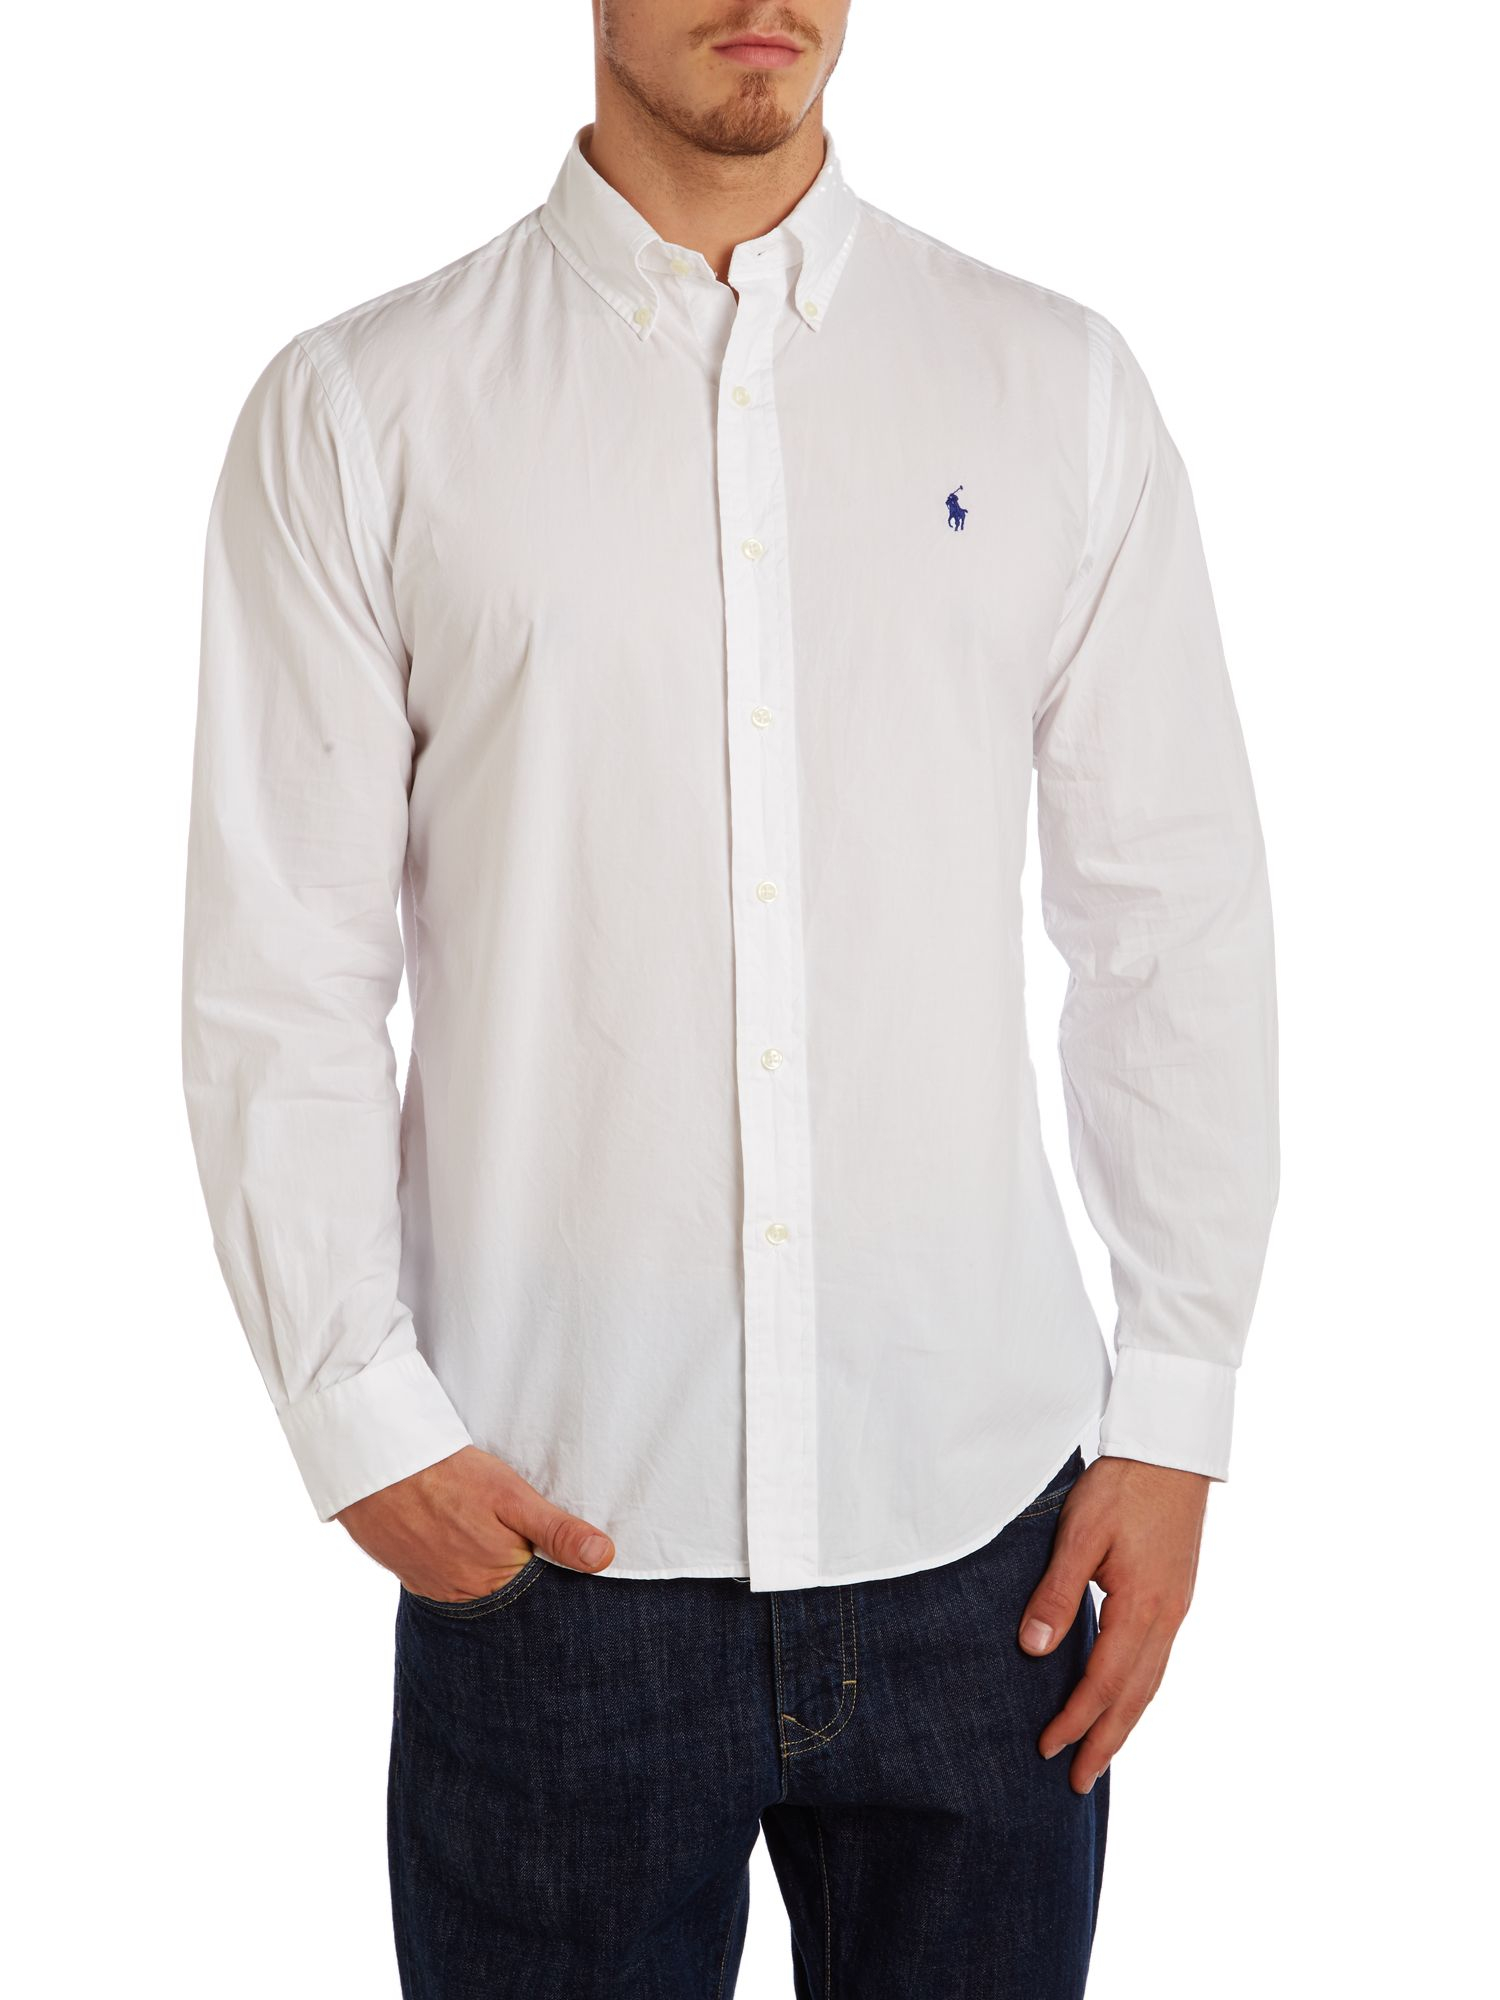 Polo ralph lauren classic long sleeve custom fit shirt in for Long sleeve fitted polo shirts